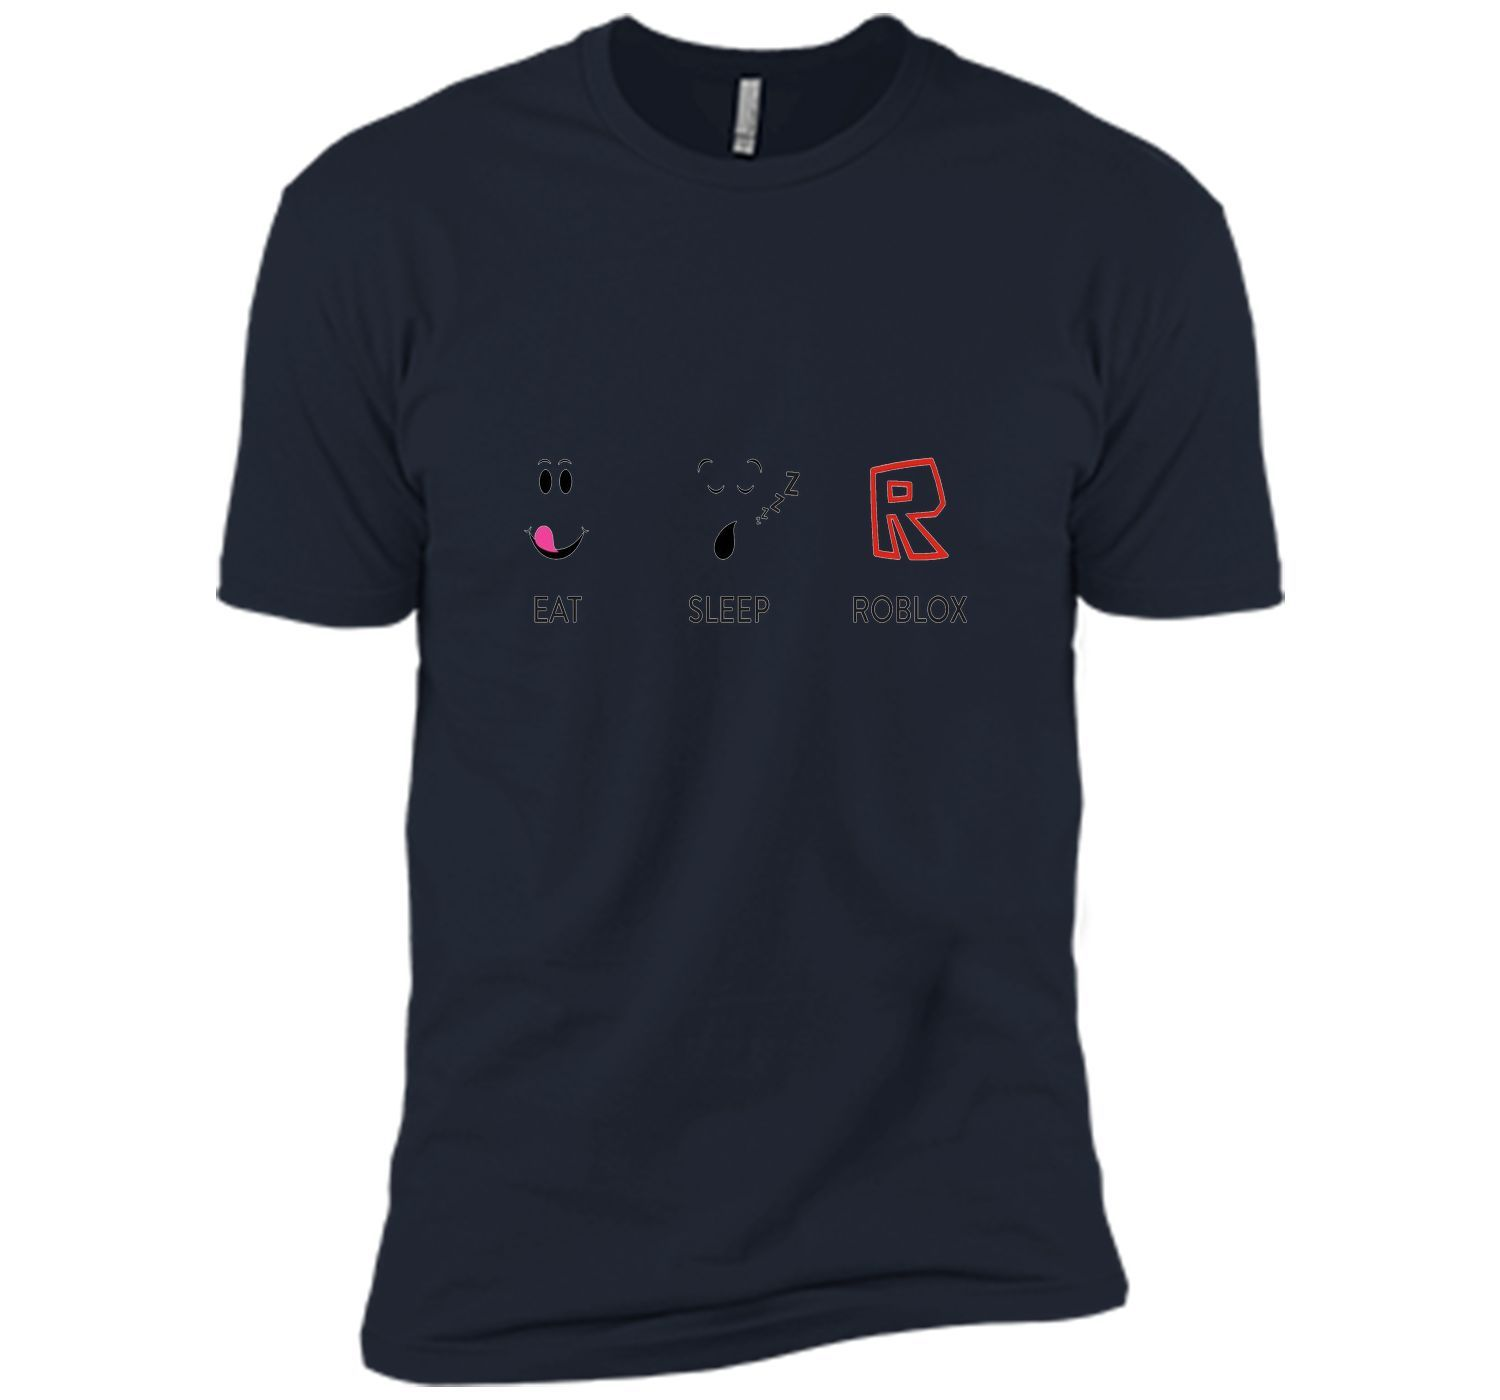 Black t shirt roblox - Roblox T Shirt Cool Shirt